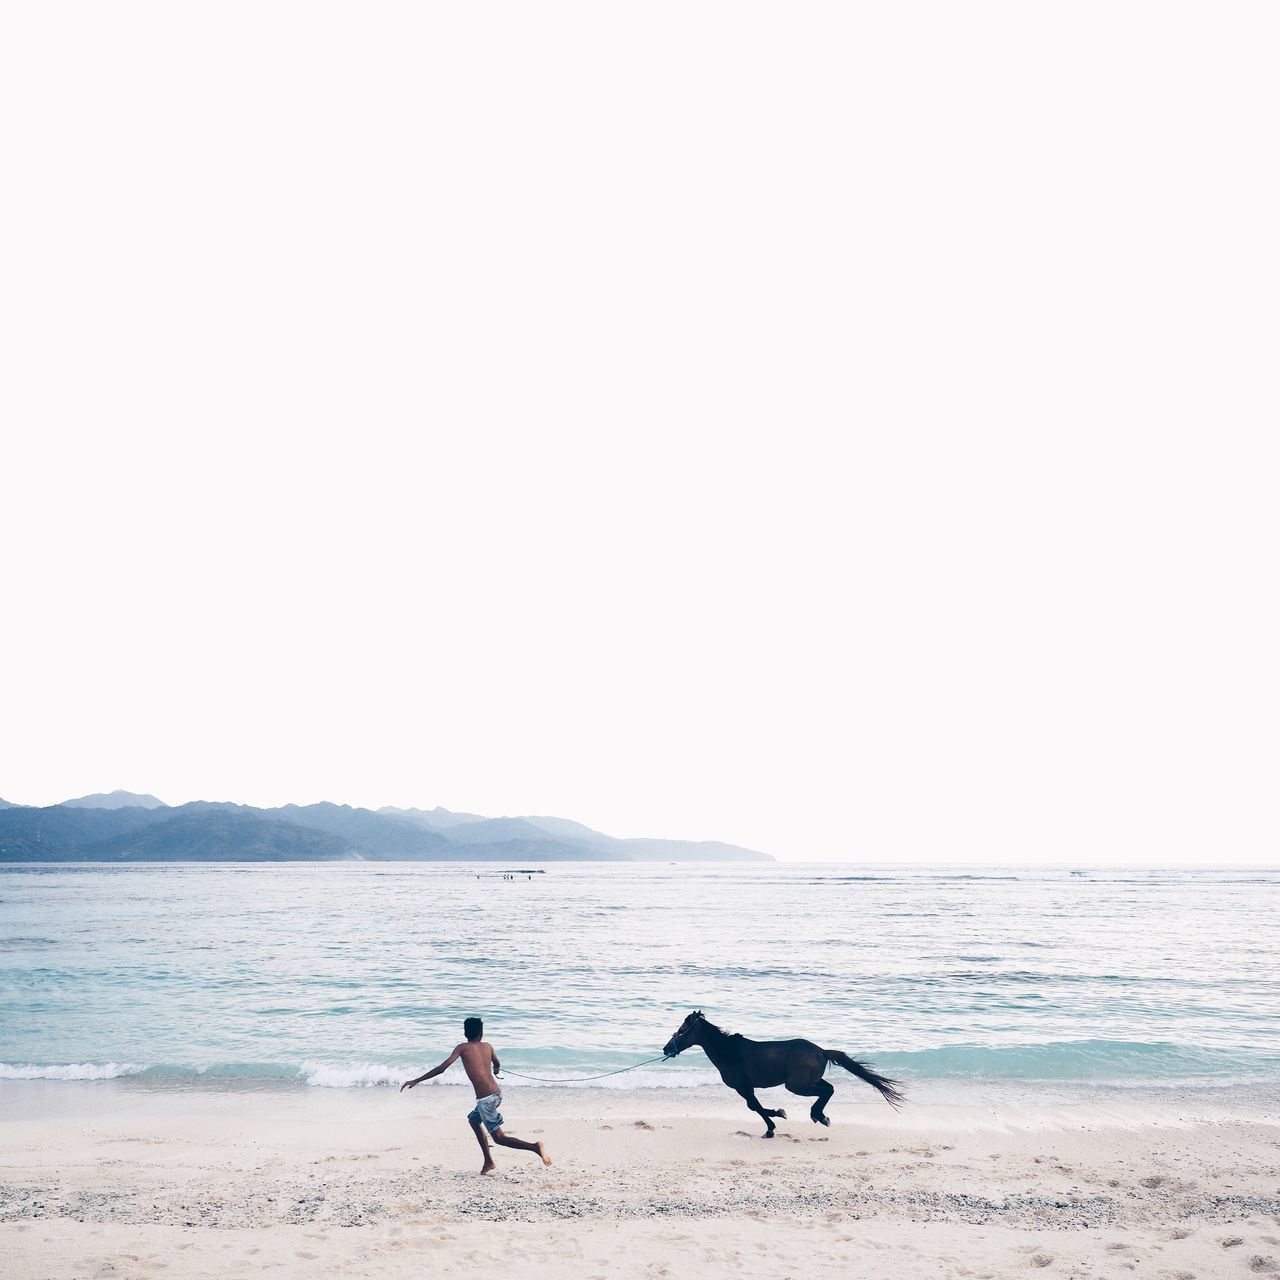 Man running with horse on shore at beach against clear sky